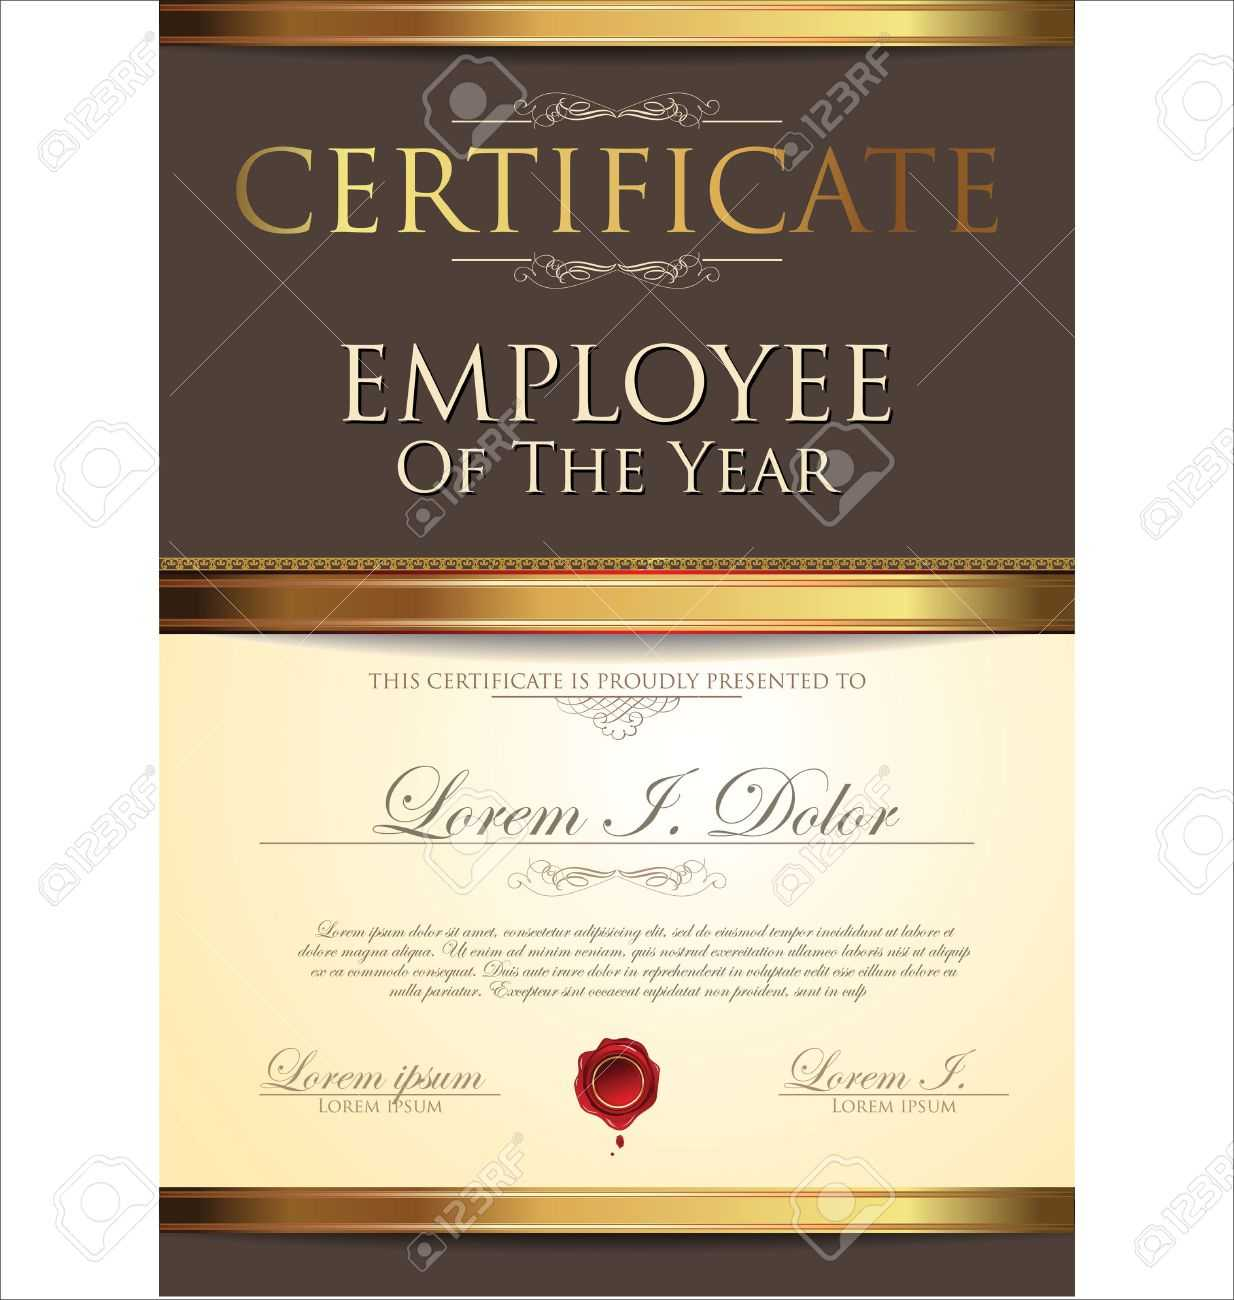 Certificate Template, Employee Of The Year Regarding Employee Of The Year Certificate Template Free